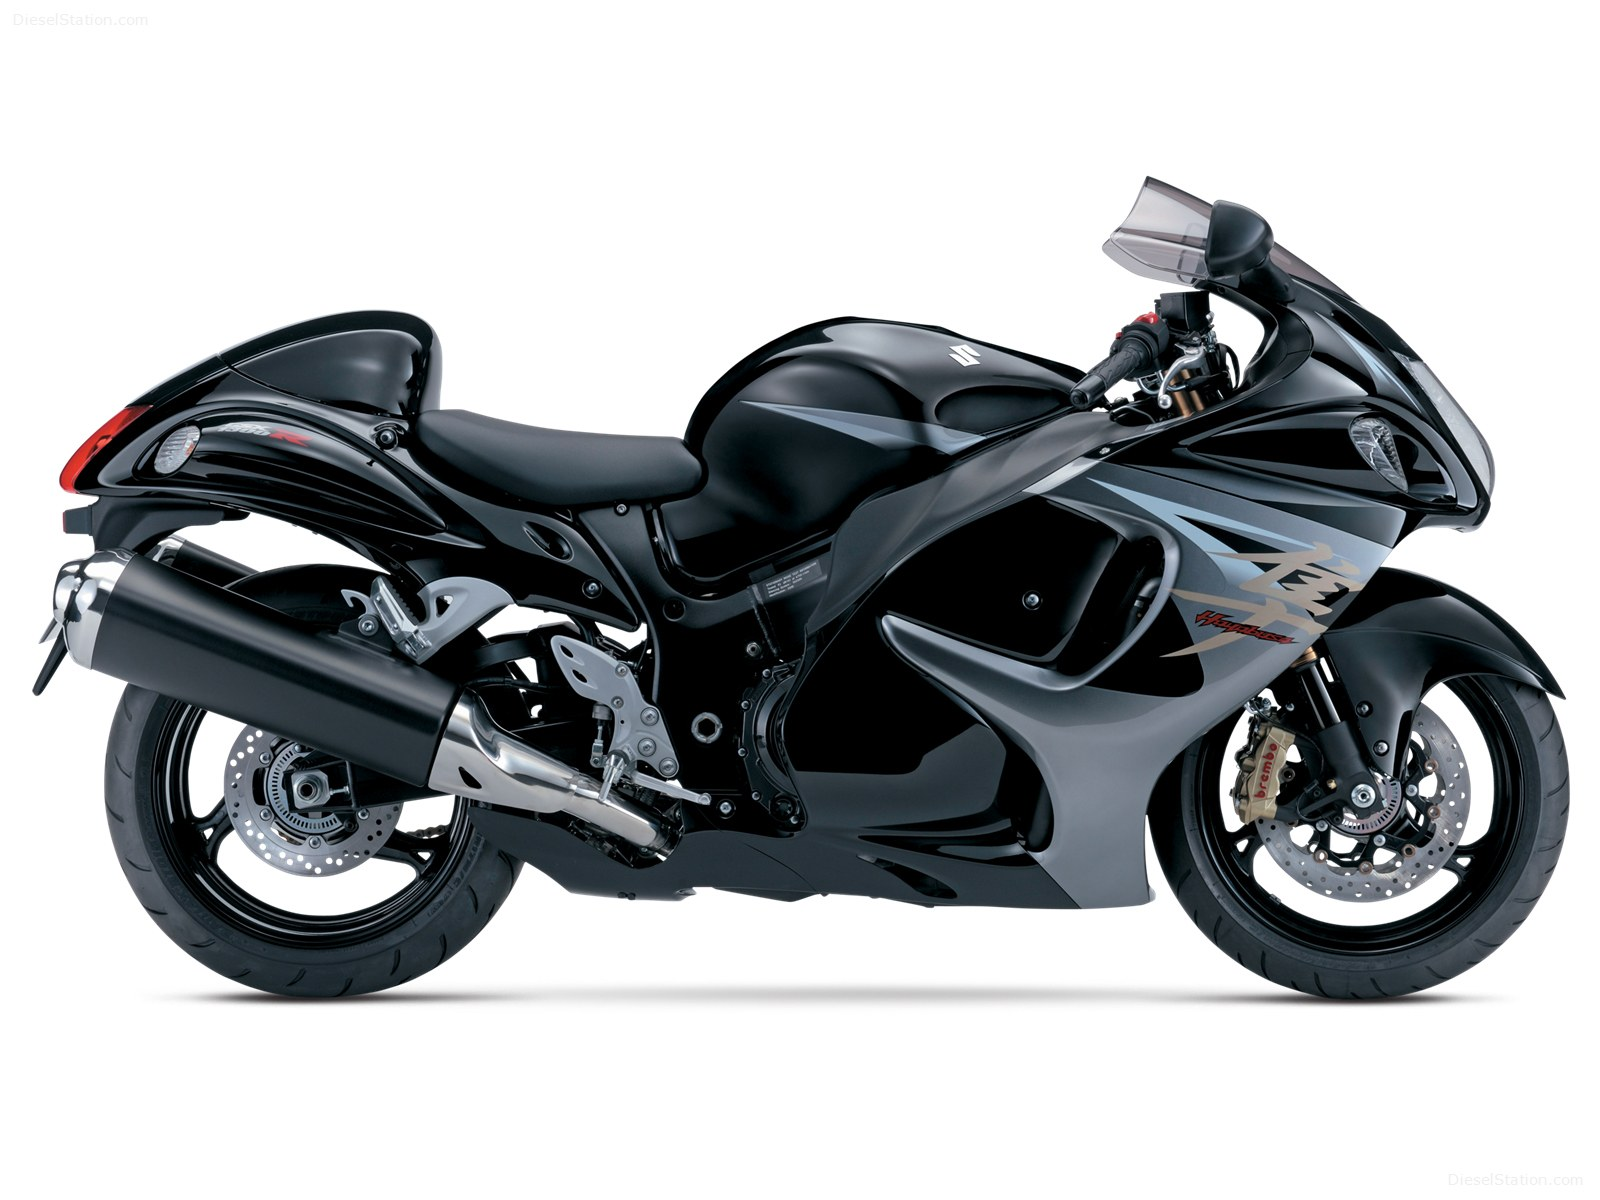 suzuki hayabusa related imagesstart 0   WeiLi Automotive 1600x1200